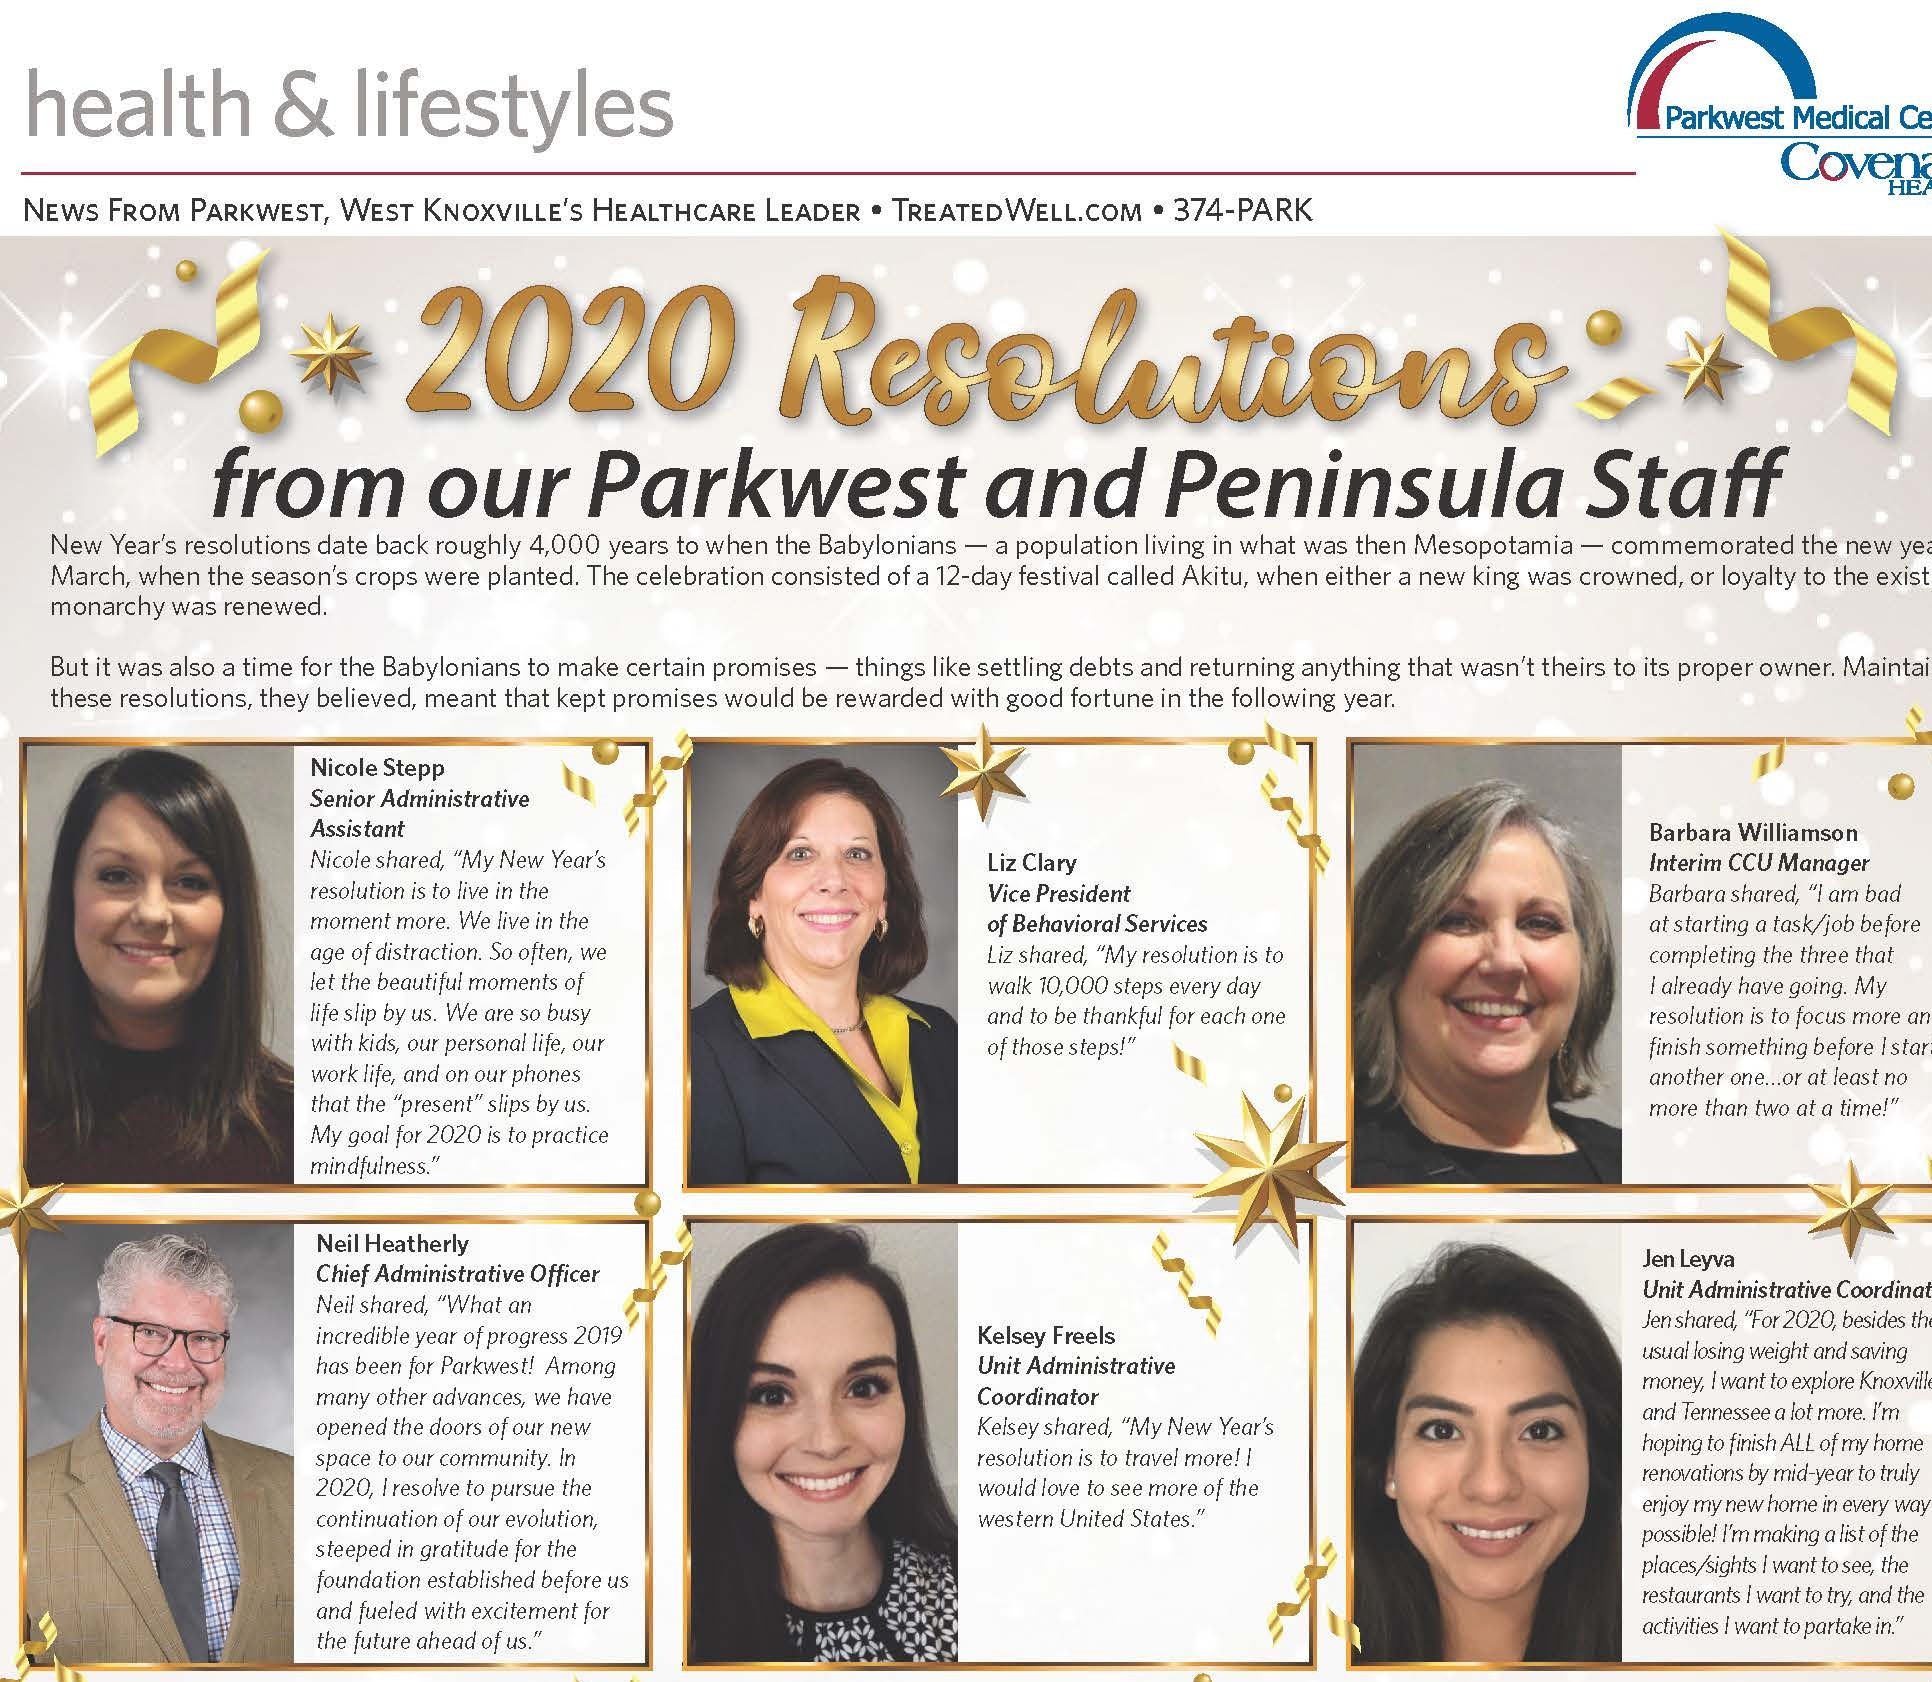 2020 Resolutions from Parkwest and Peninsula Staff